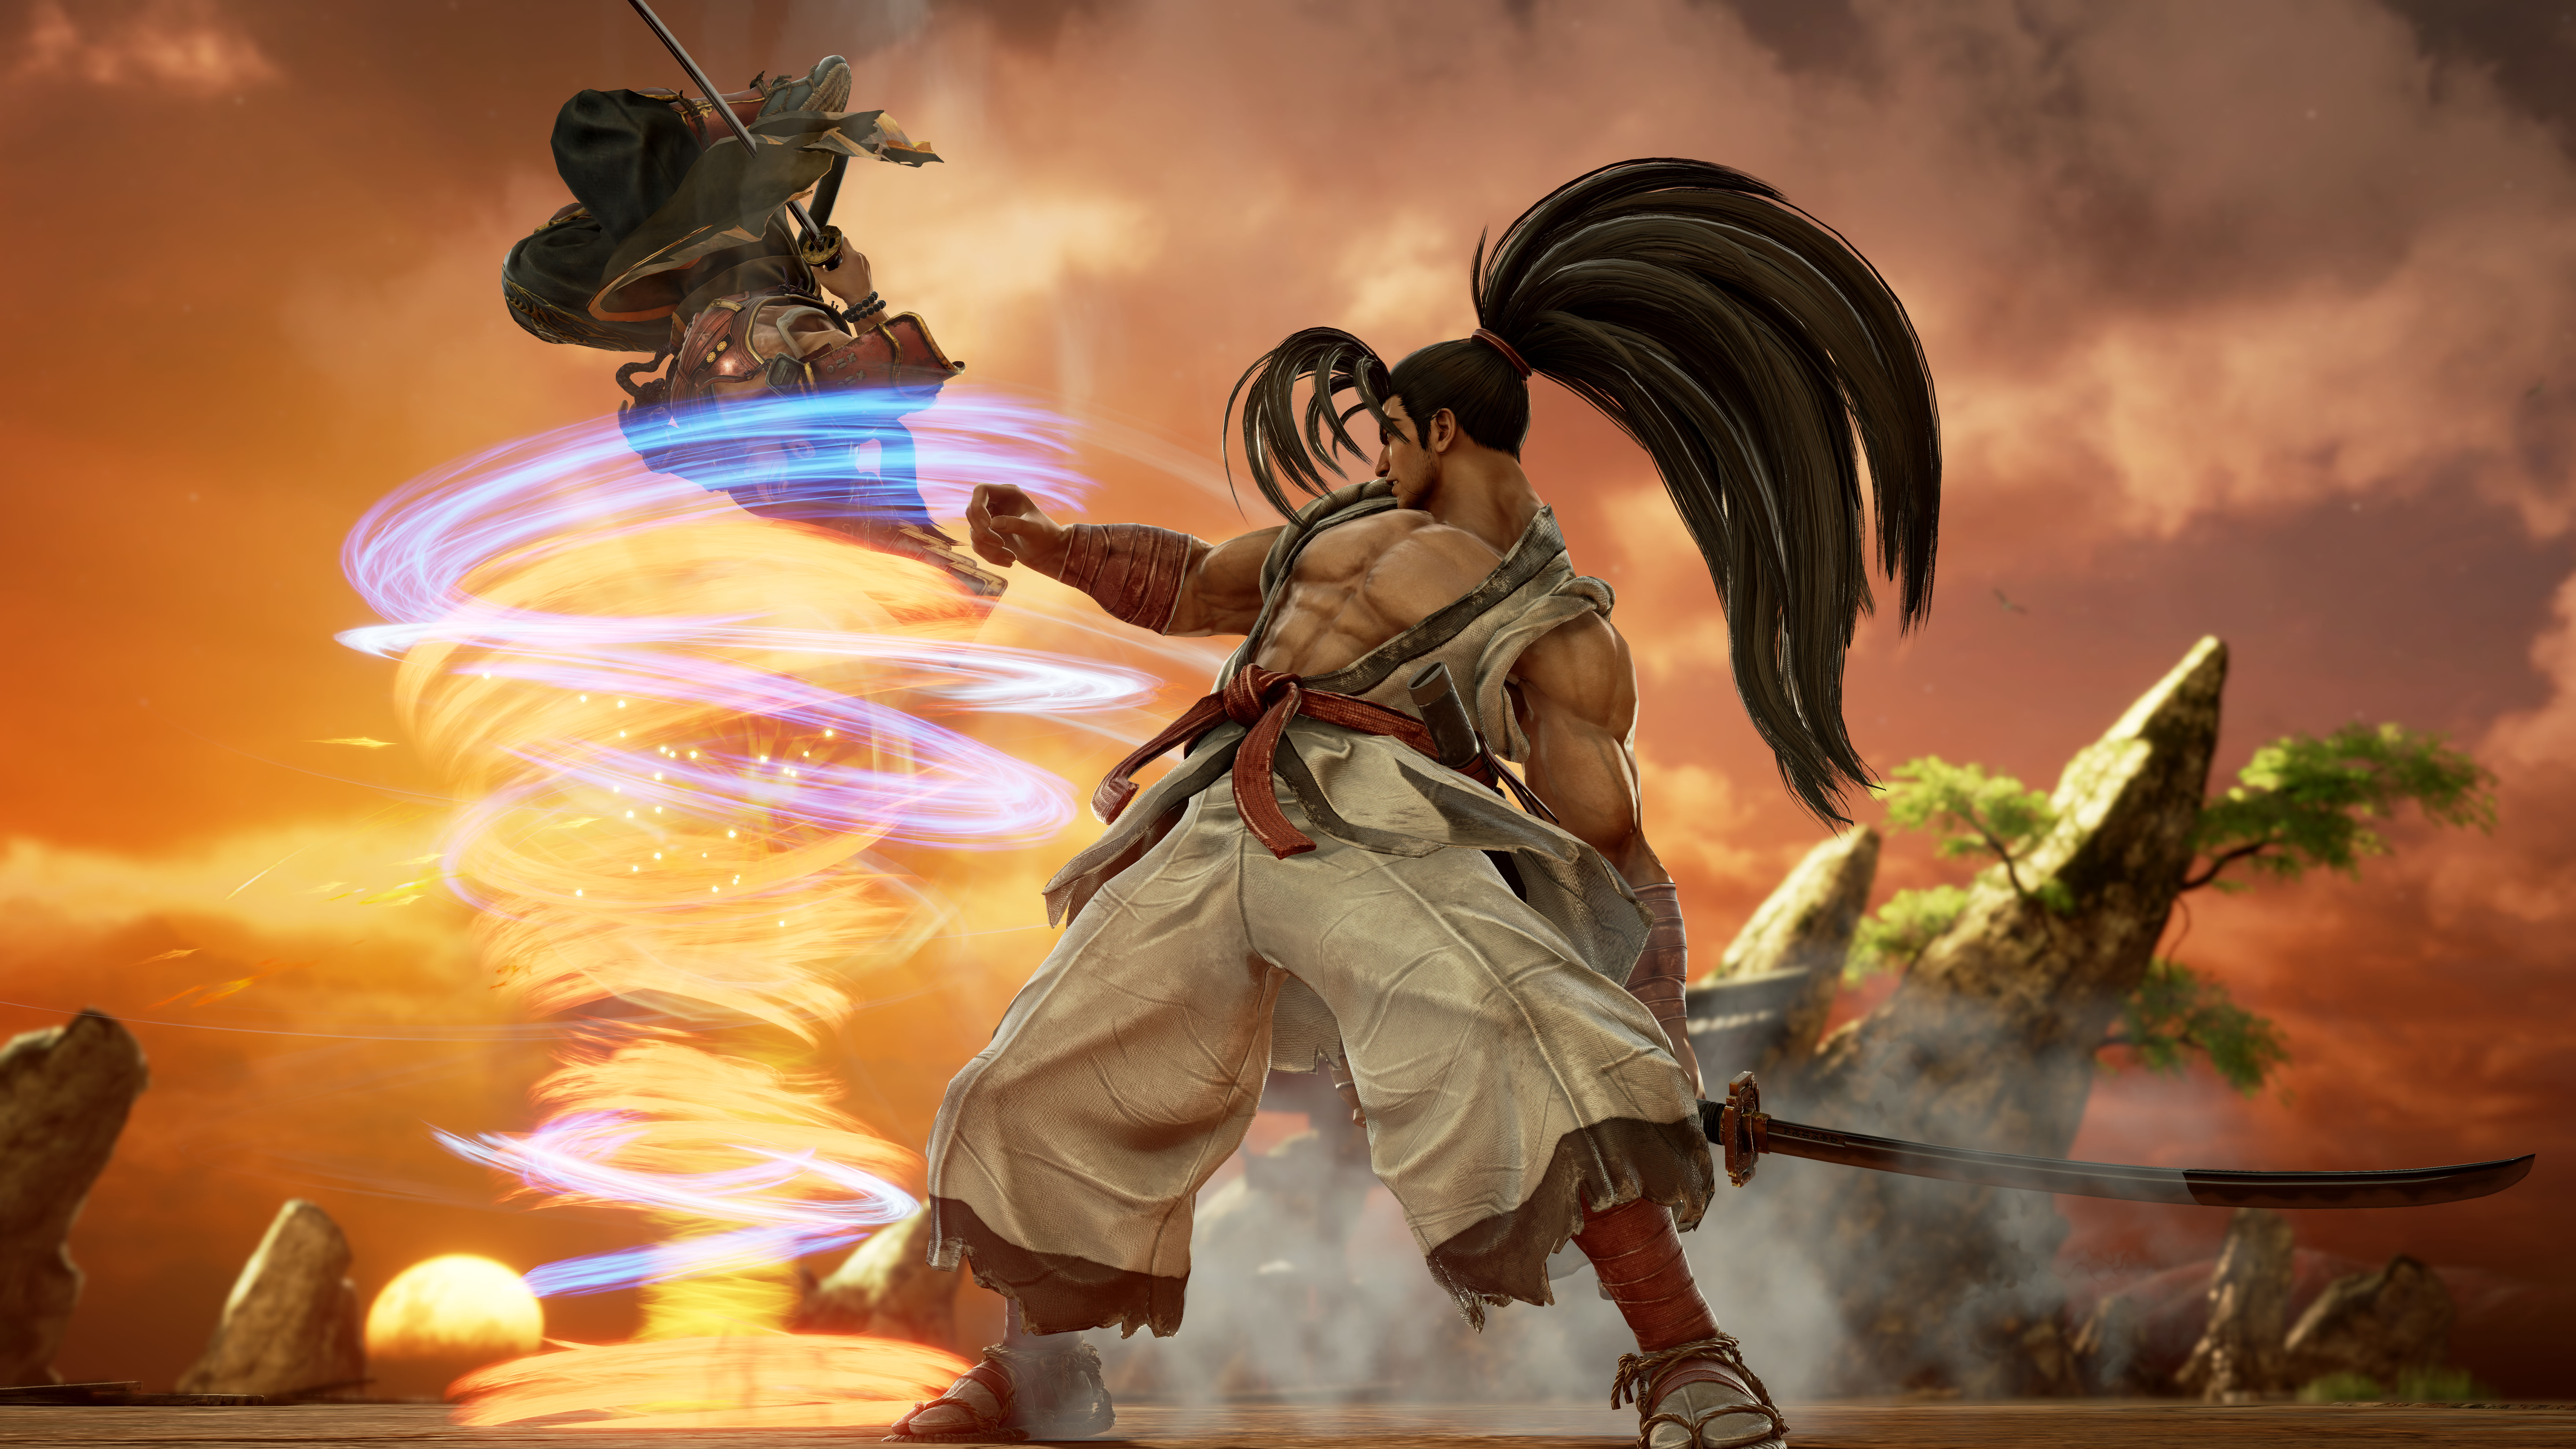 Samurai Shodown is coming to PC on June 11 as an Epic Games Store exclusive